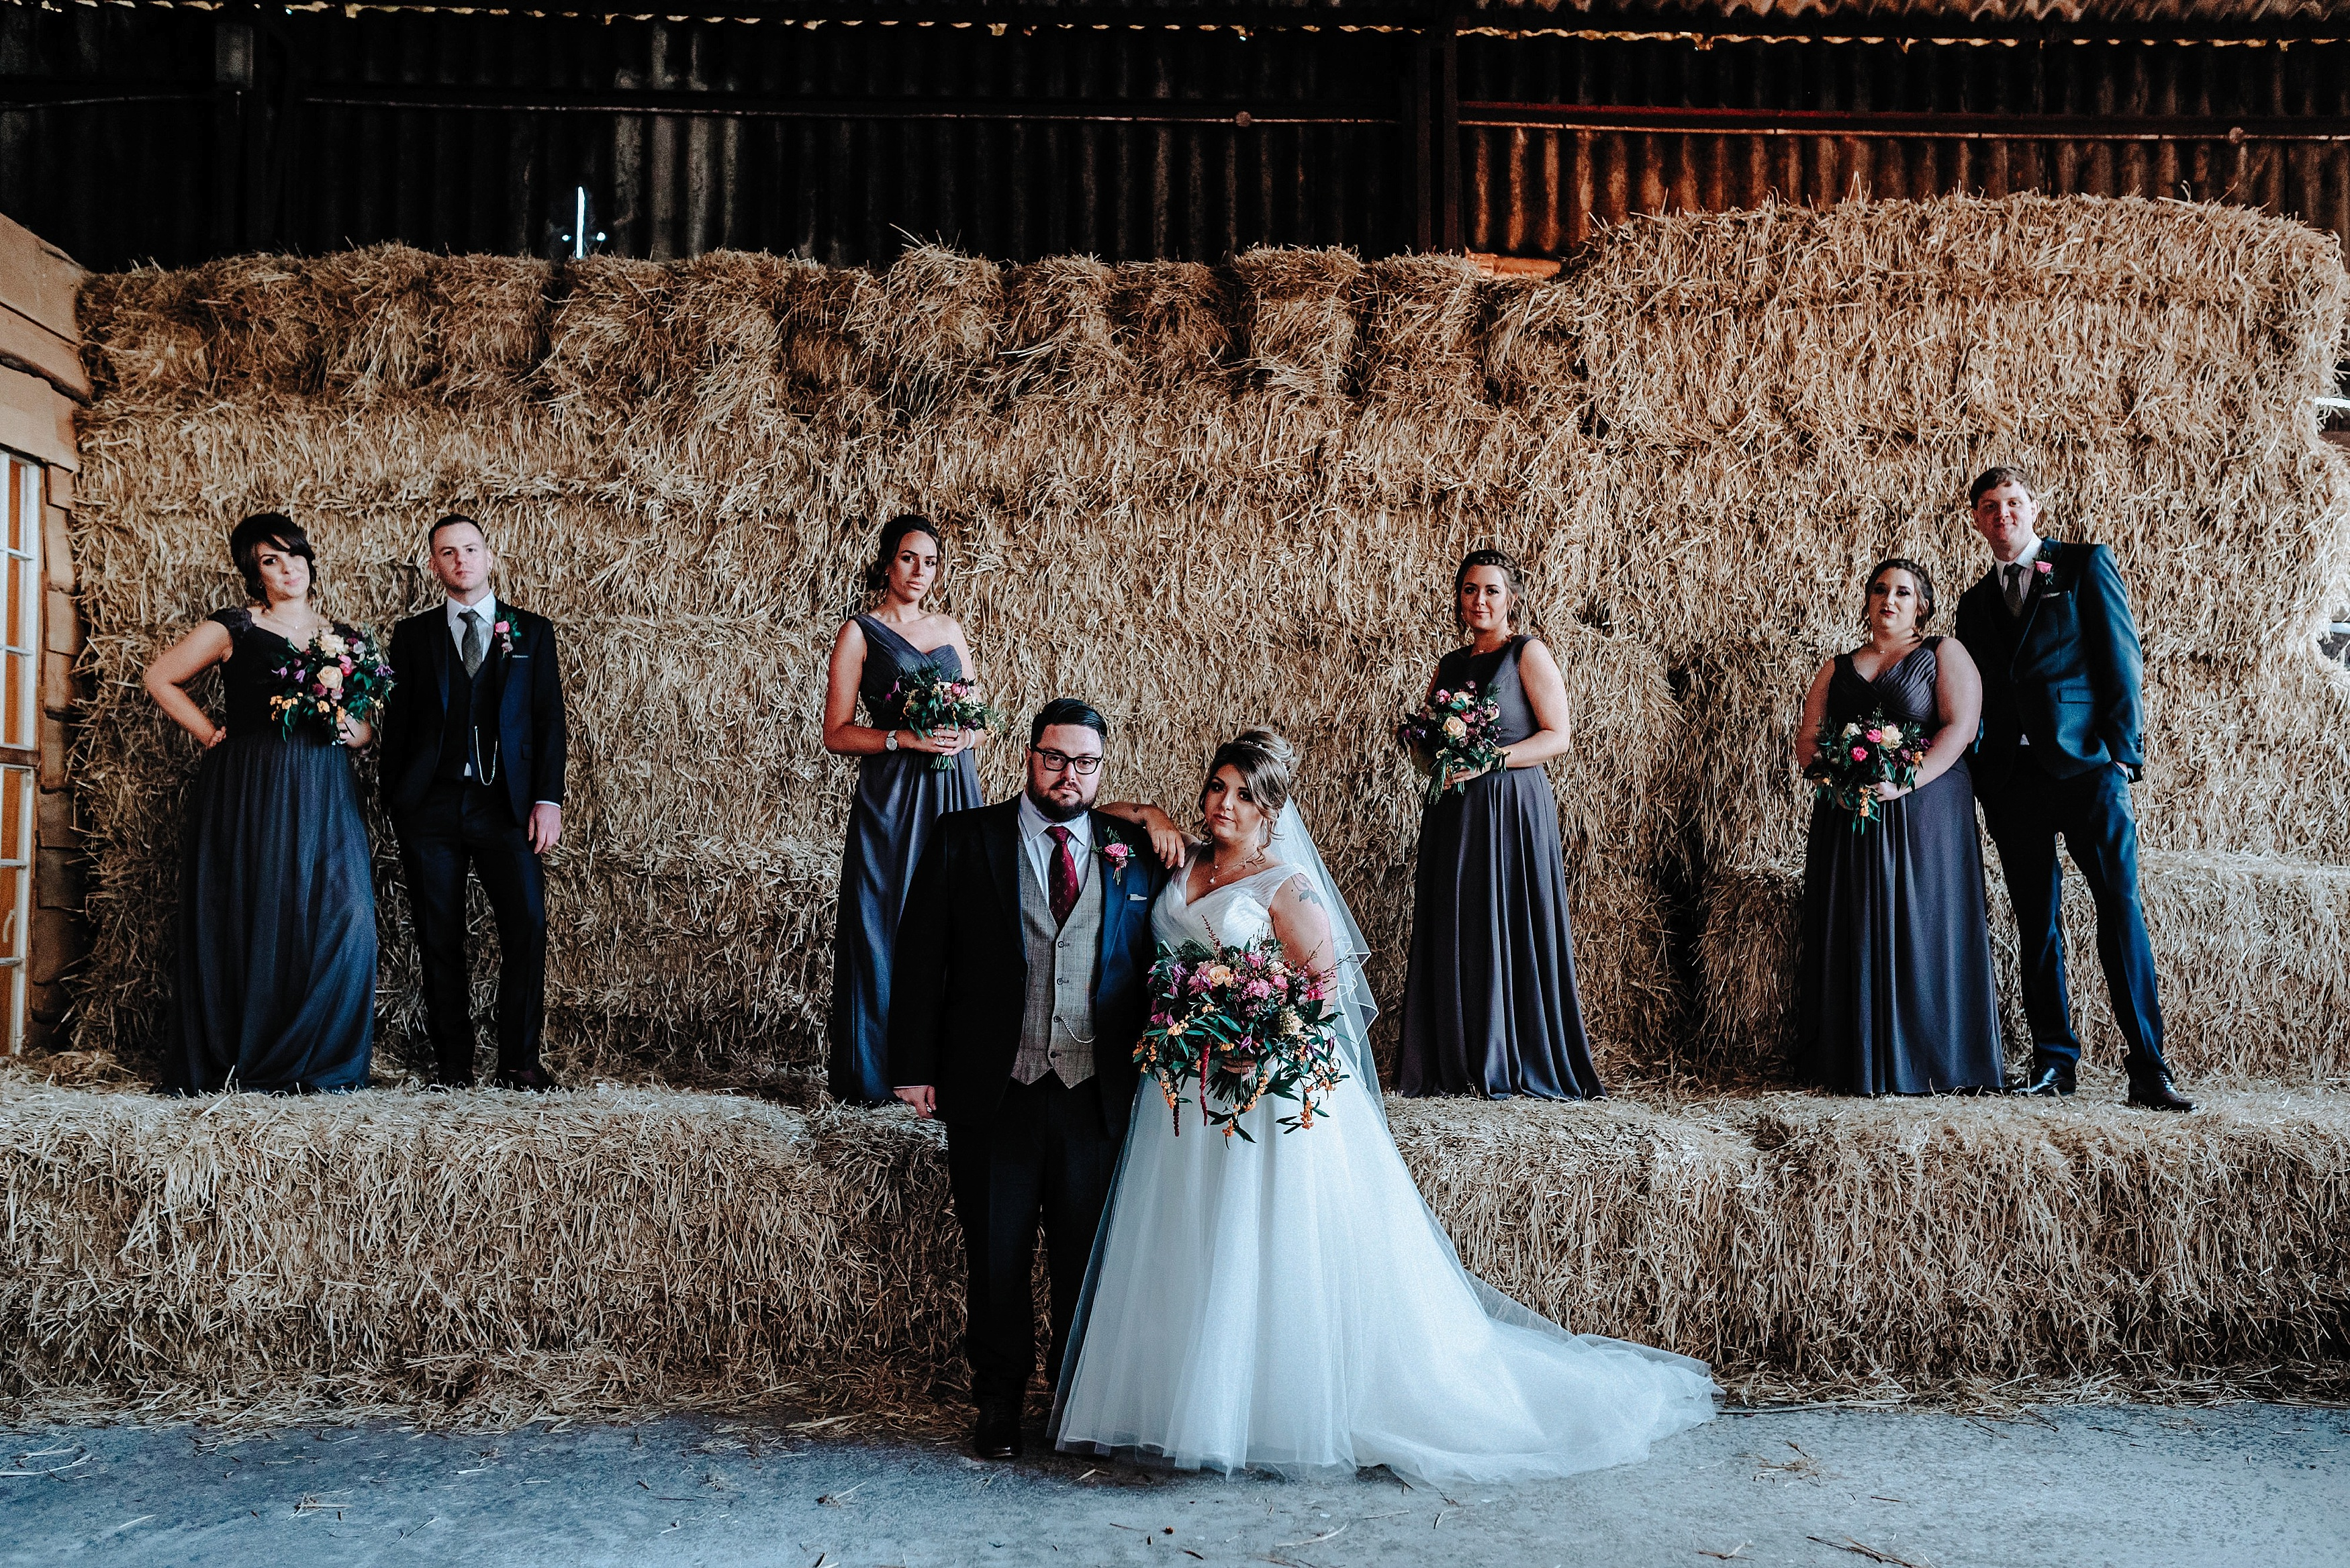 Bridal Party in a barn at a Cheshire Barn Wedding